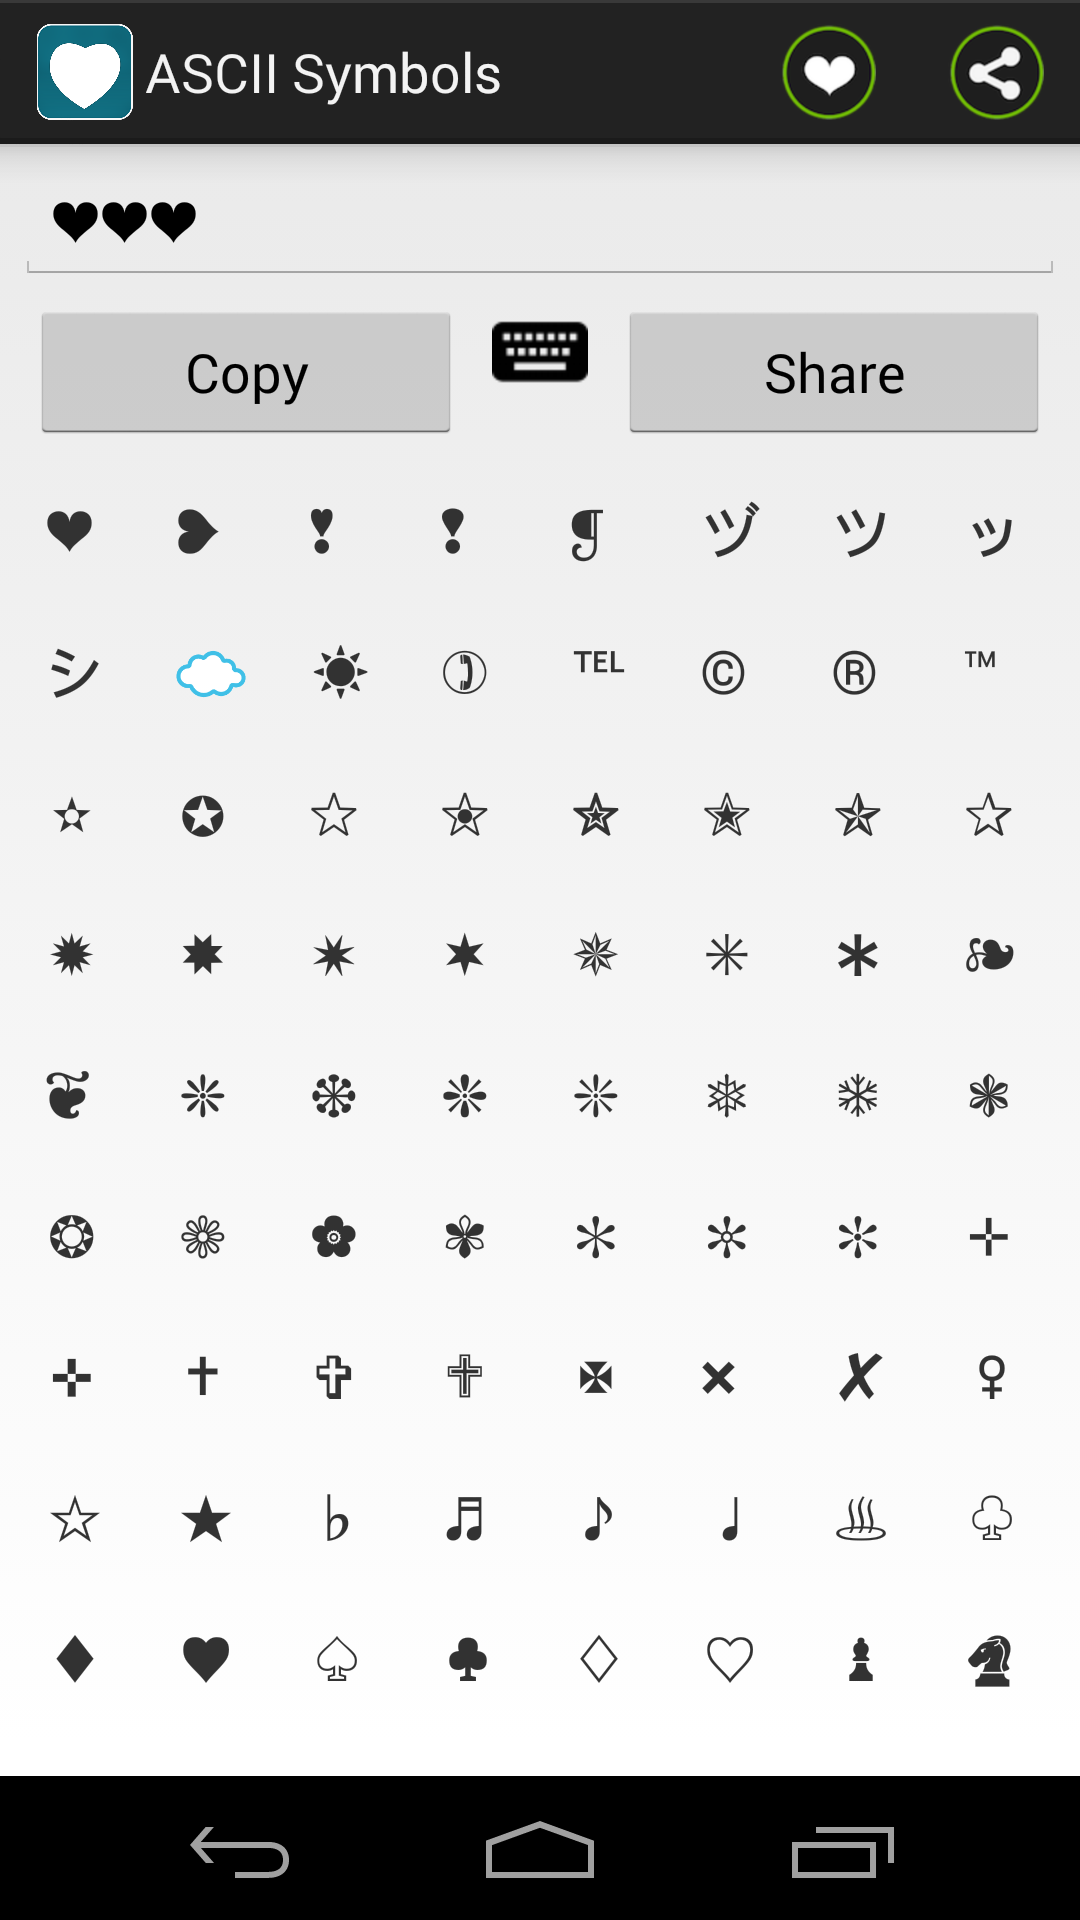 Ascii text symbols top android app by sanketbafna codecanyon ascii text symbols top android app biocorpaavc Images